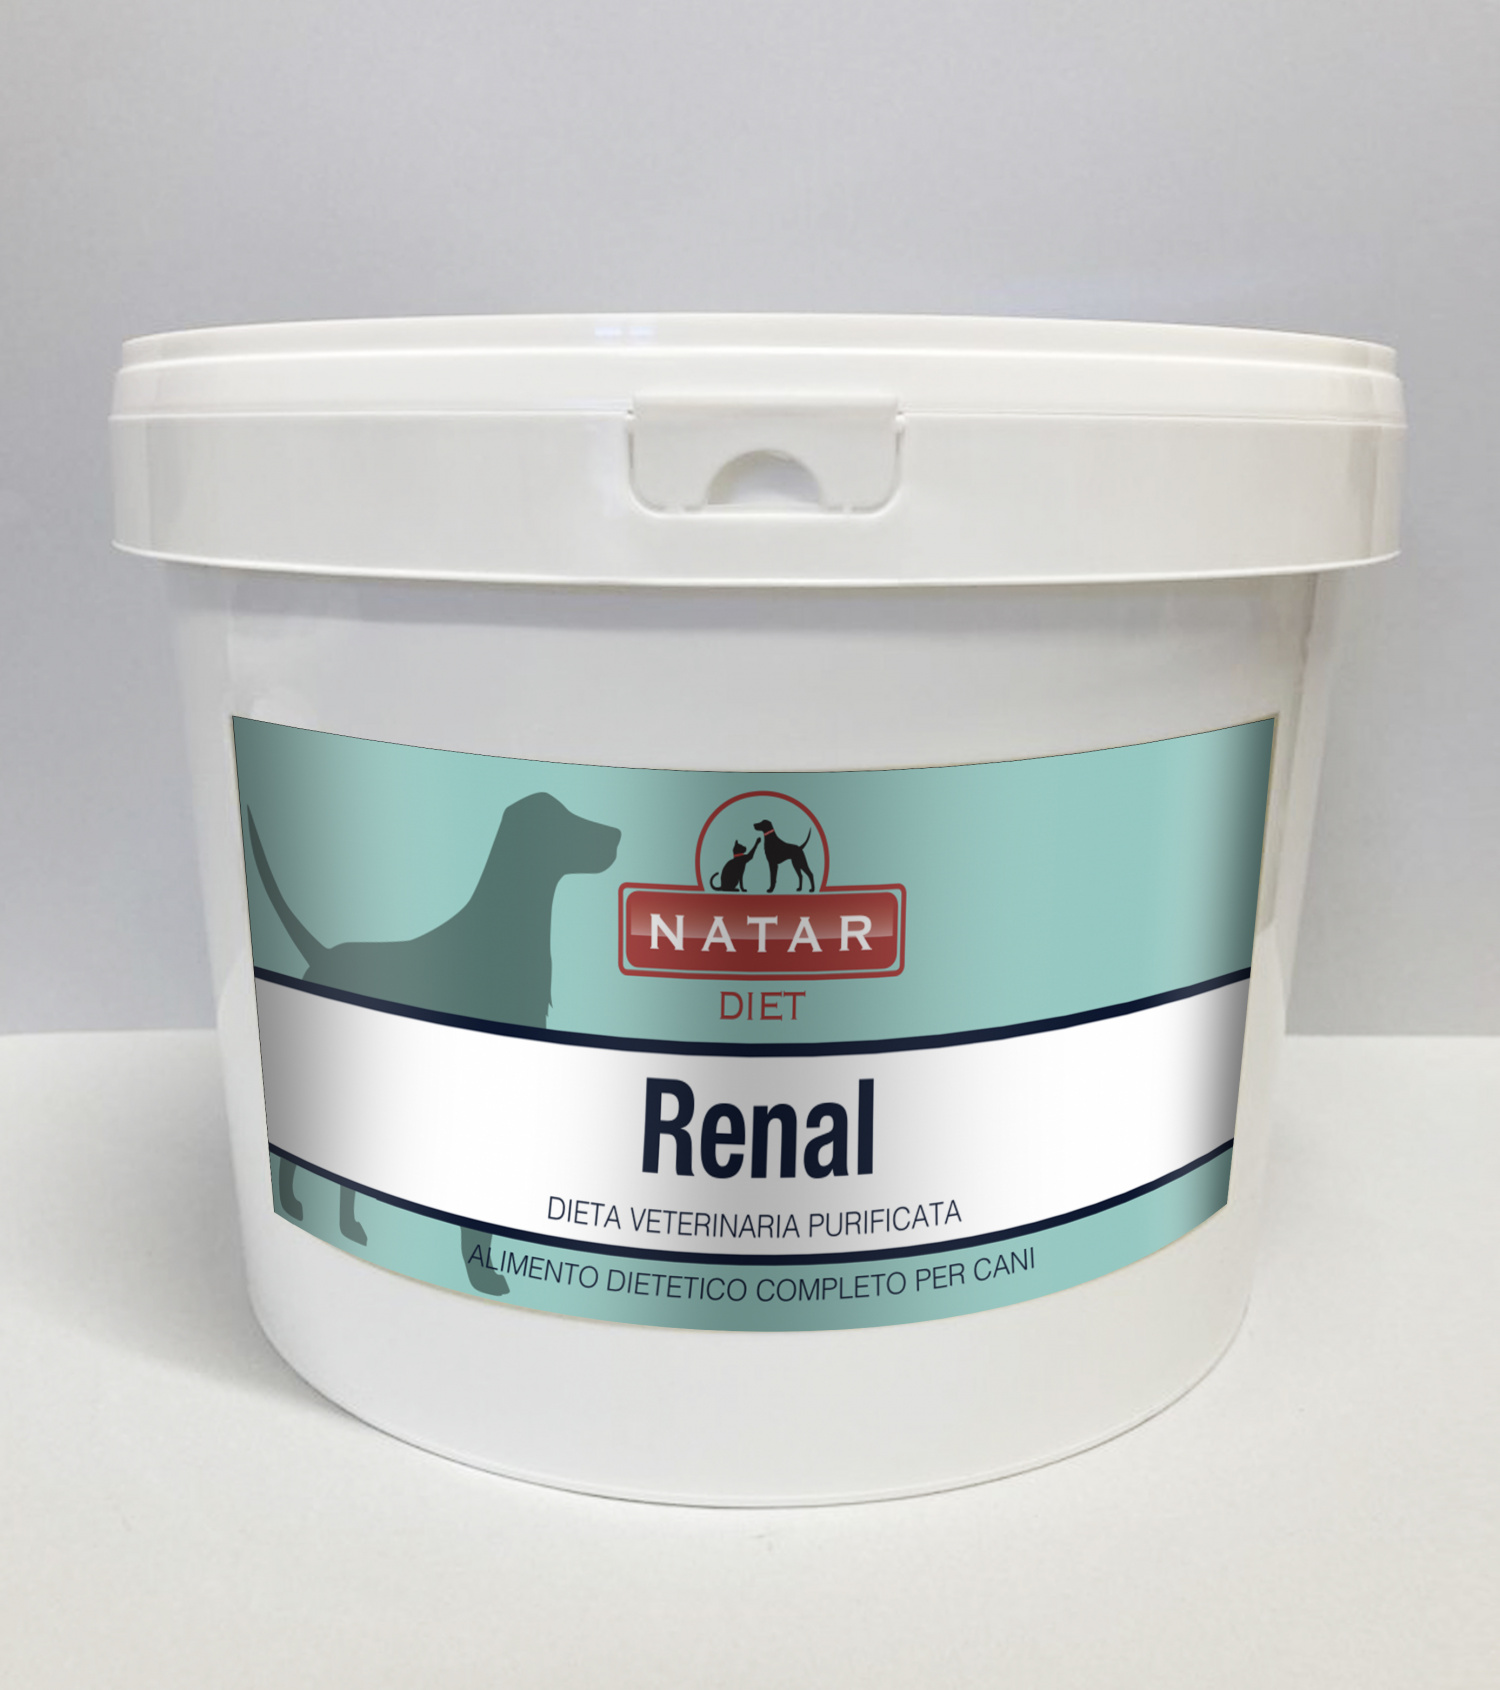 Natar Diet Renal for dogs